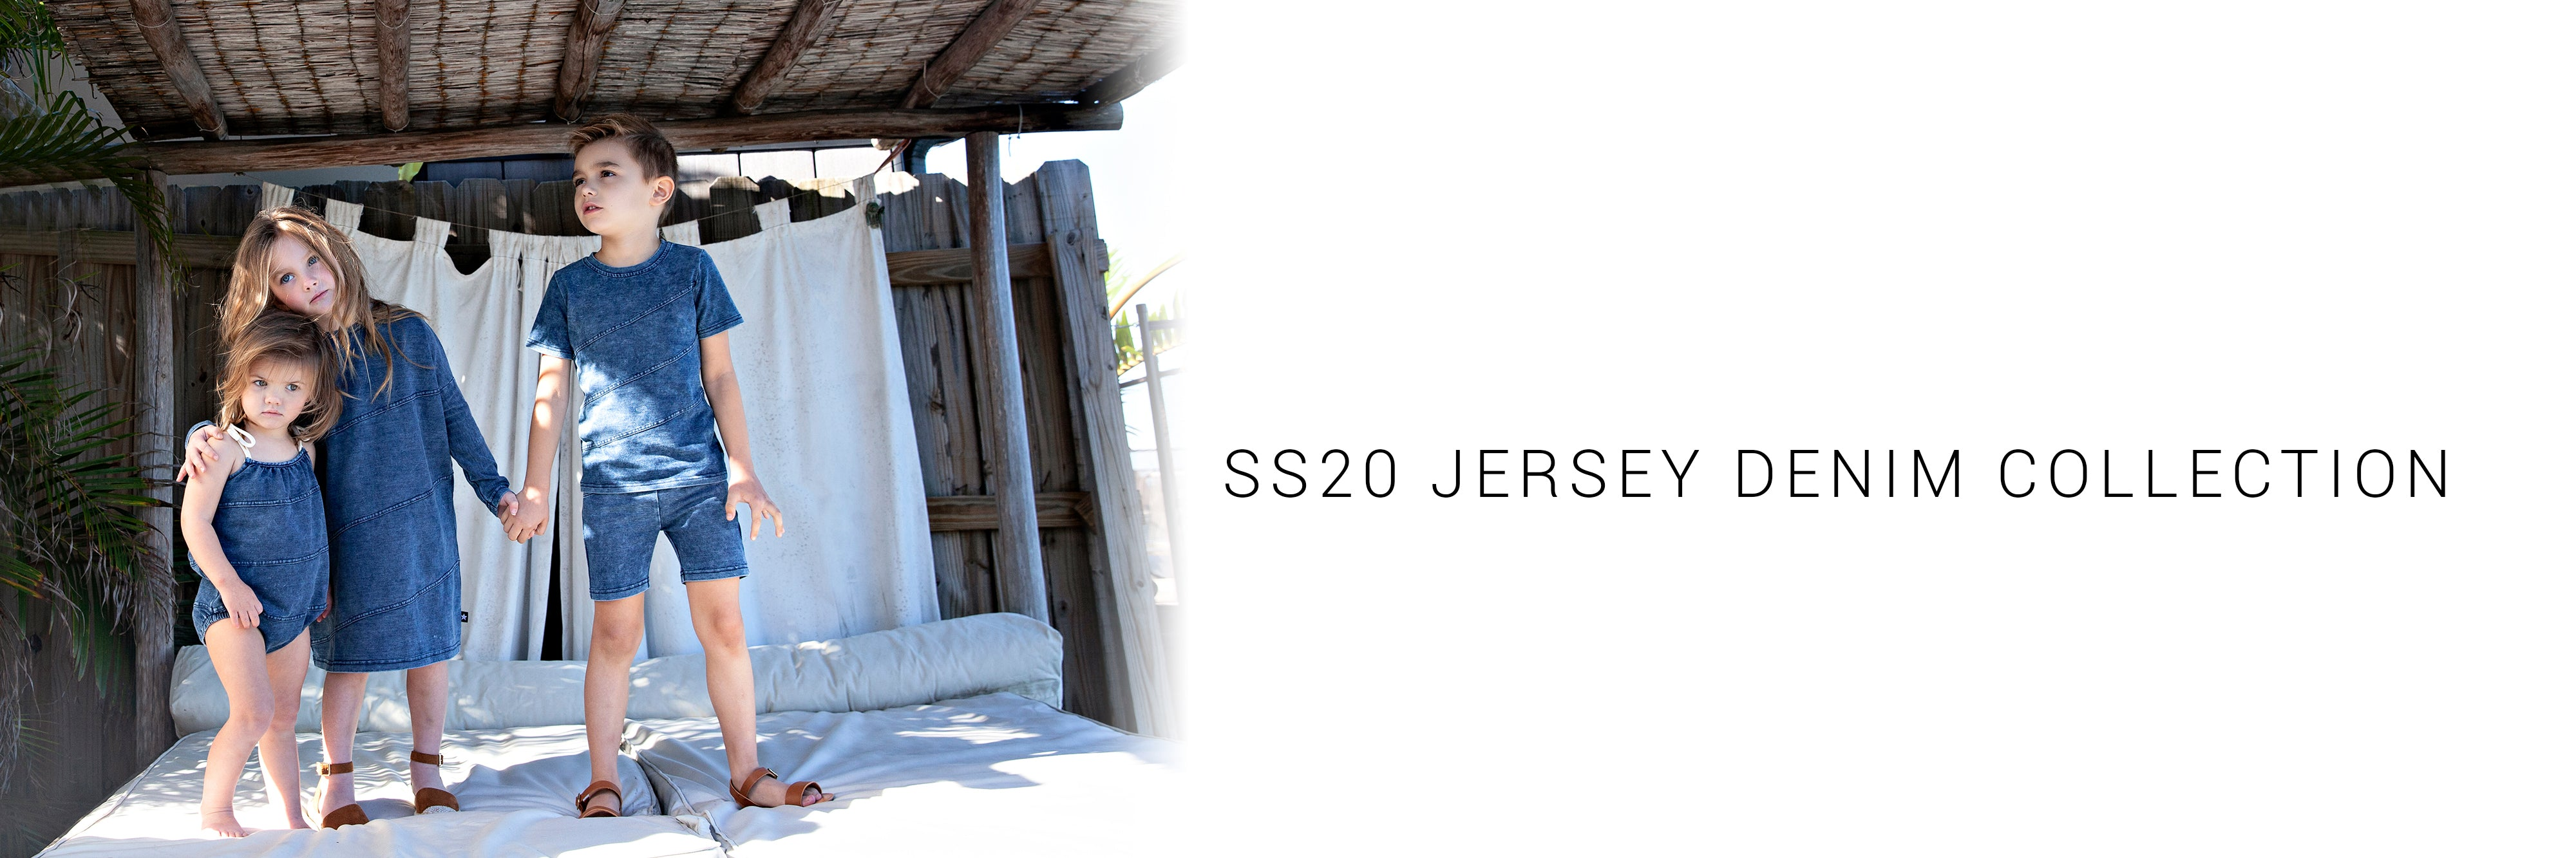 SS20 Jersey Denim Collection